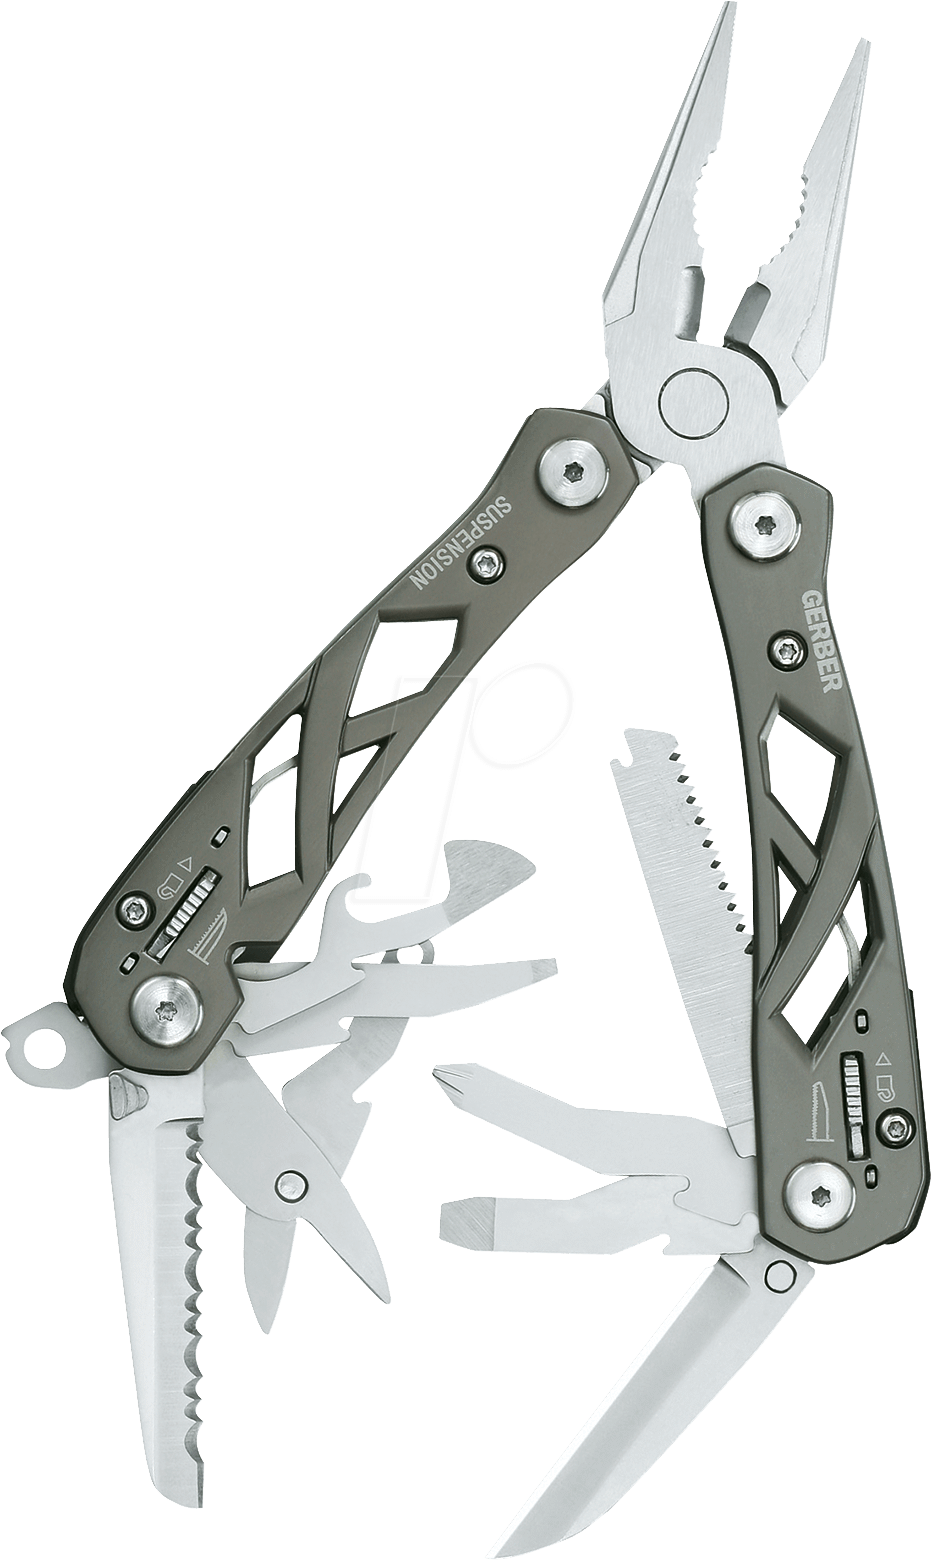 GERBER MT SUSP - Multitool, 9 in 1, 100 mm